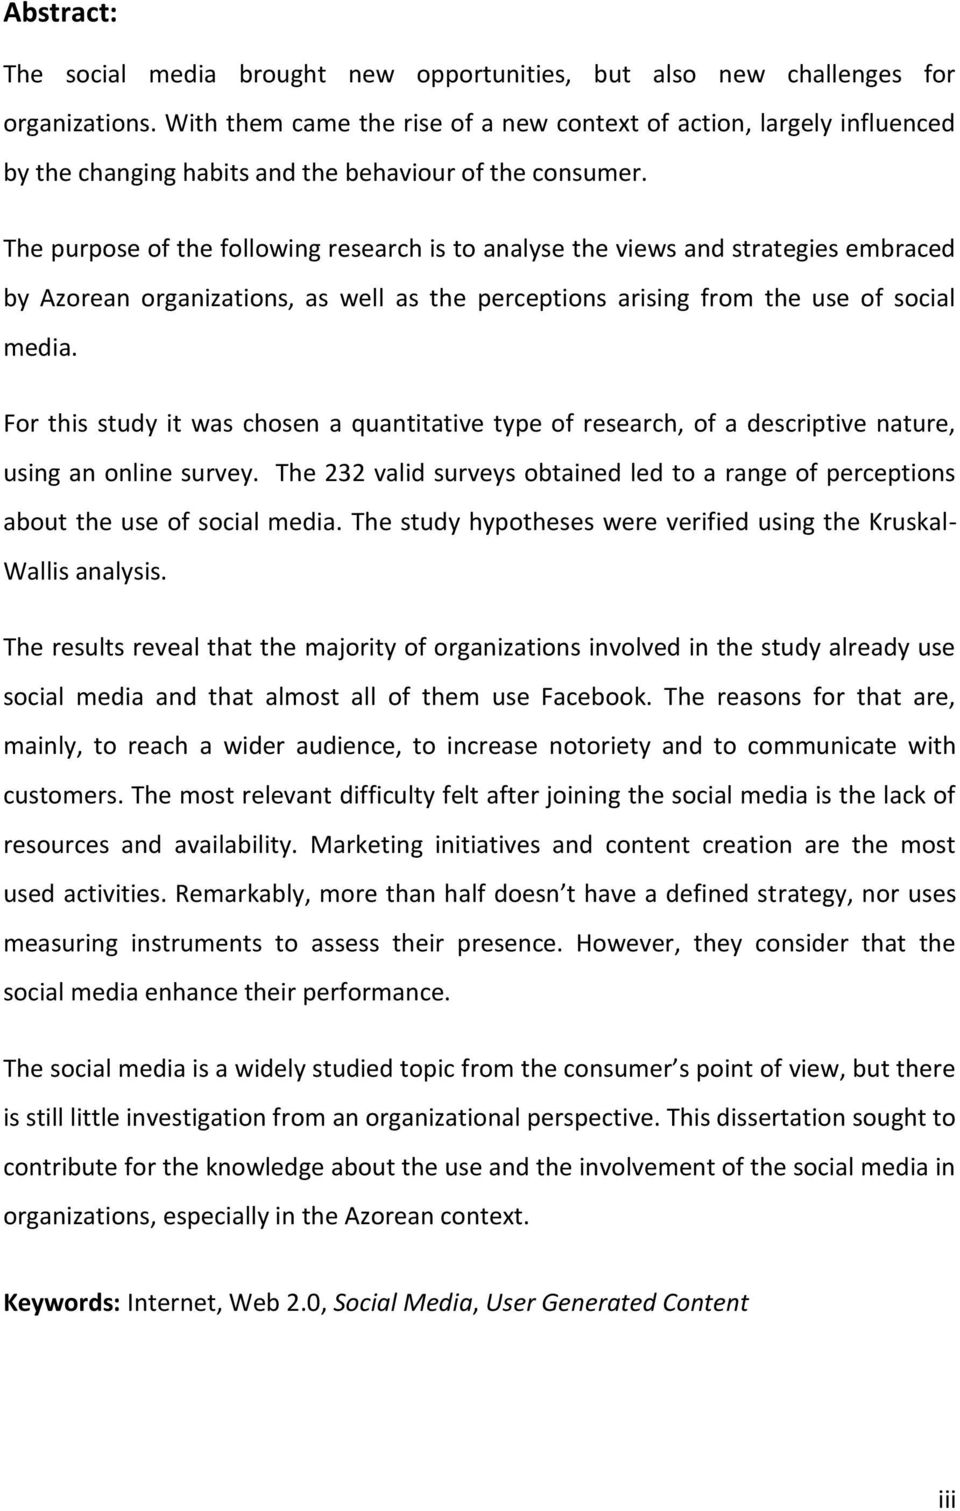 The purpose of the following research is to analyse the views and strategies embraced by Azorean organizations, as well as the perceptions arising from the use of social media.